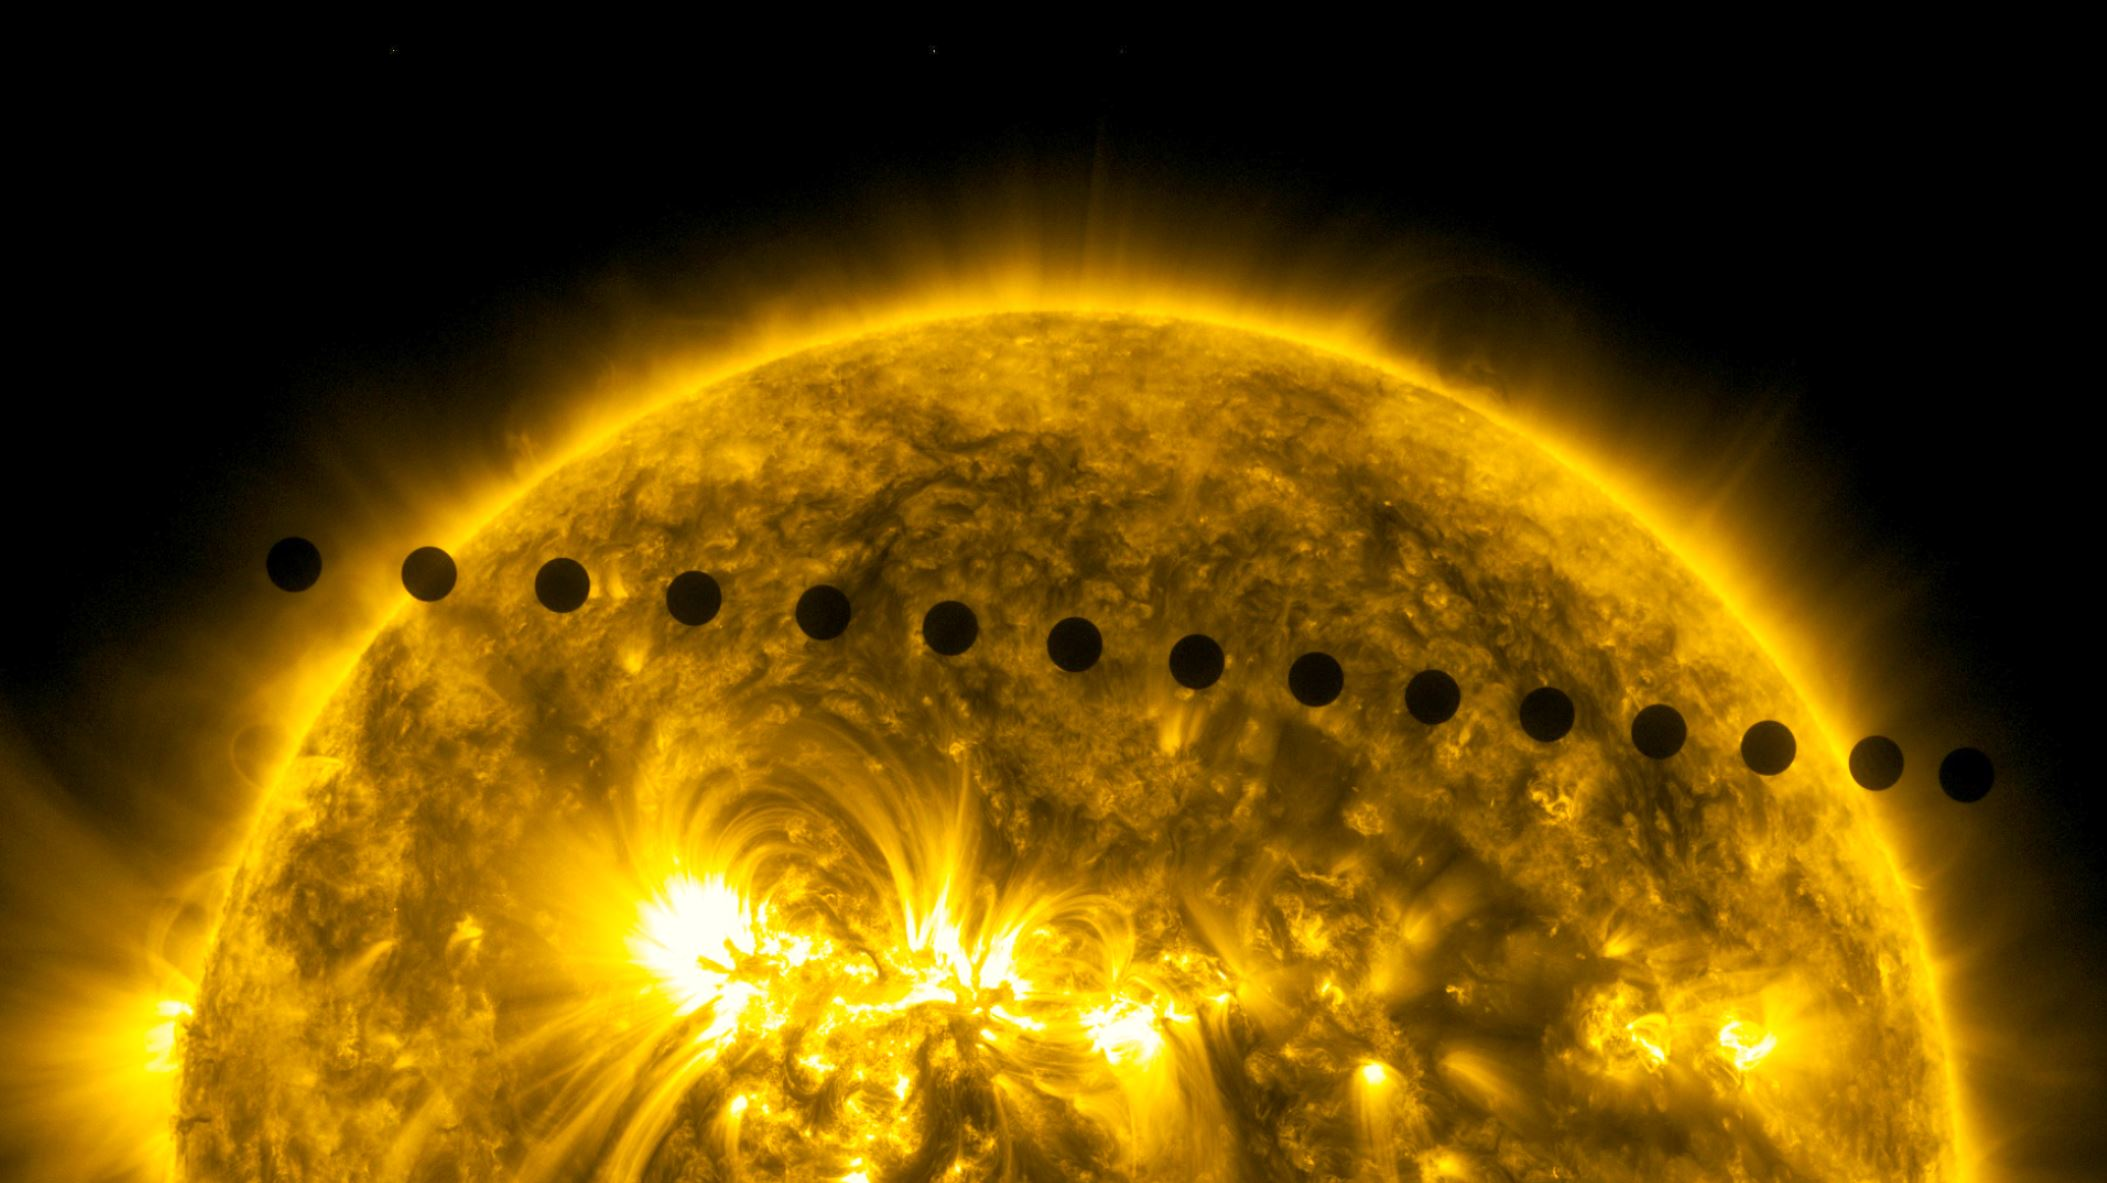 On June 5-6, 2012, NASA's Solar Dynamics Observatory collected images of one of the rarest predictable solar events: the transit of Venus across the face of the Sun. - Image Credits:  NASA/SDO, AIA  - HDR tune by Universal-Sci